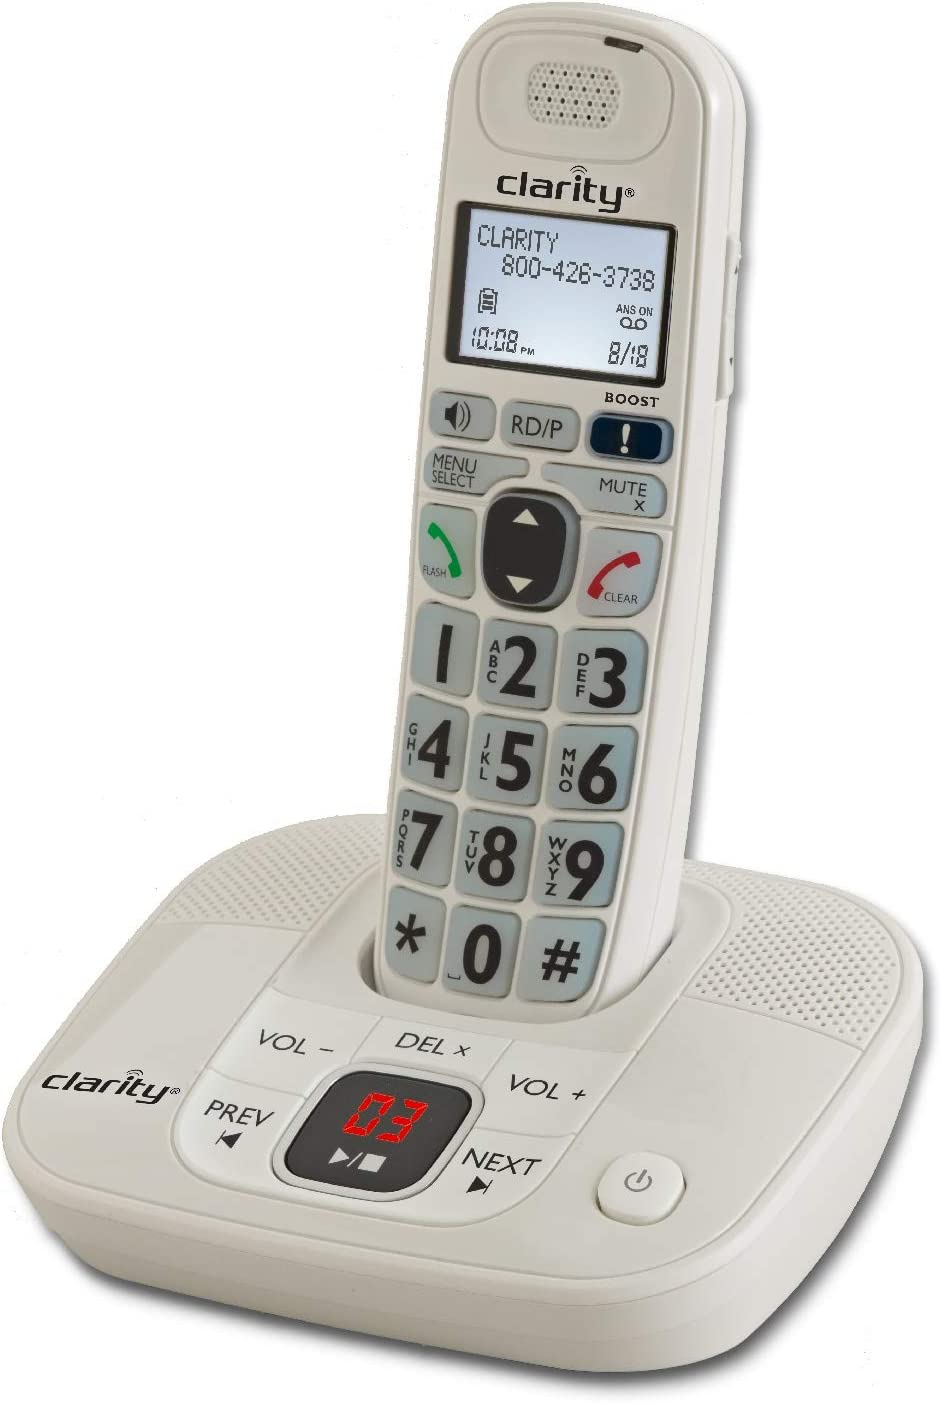 Clarity 53714 Dect 6.0 Amplified Cordless Phone with Digital Answering System VoIP Phone and Device,White,D714